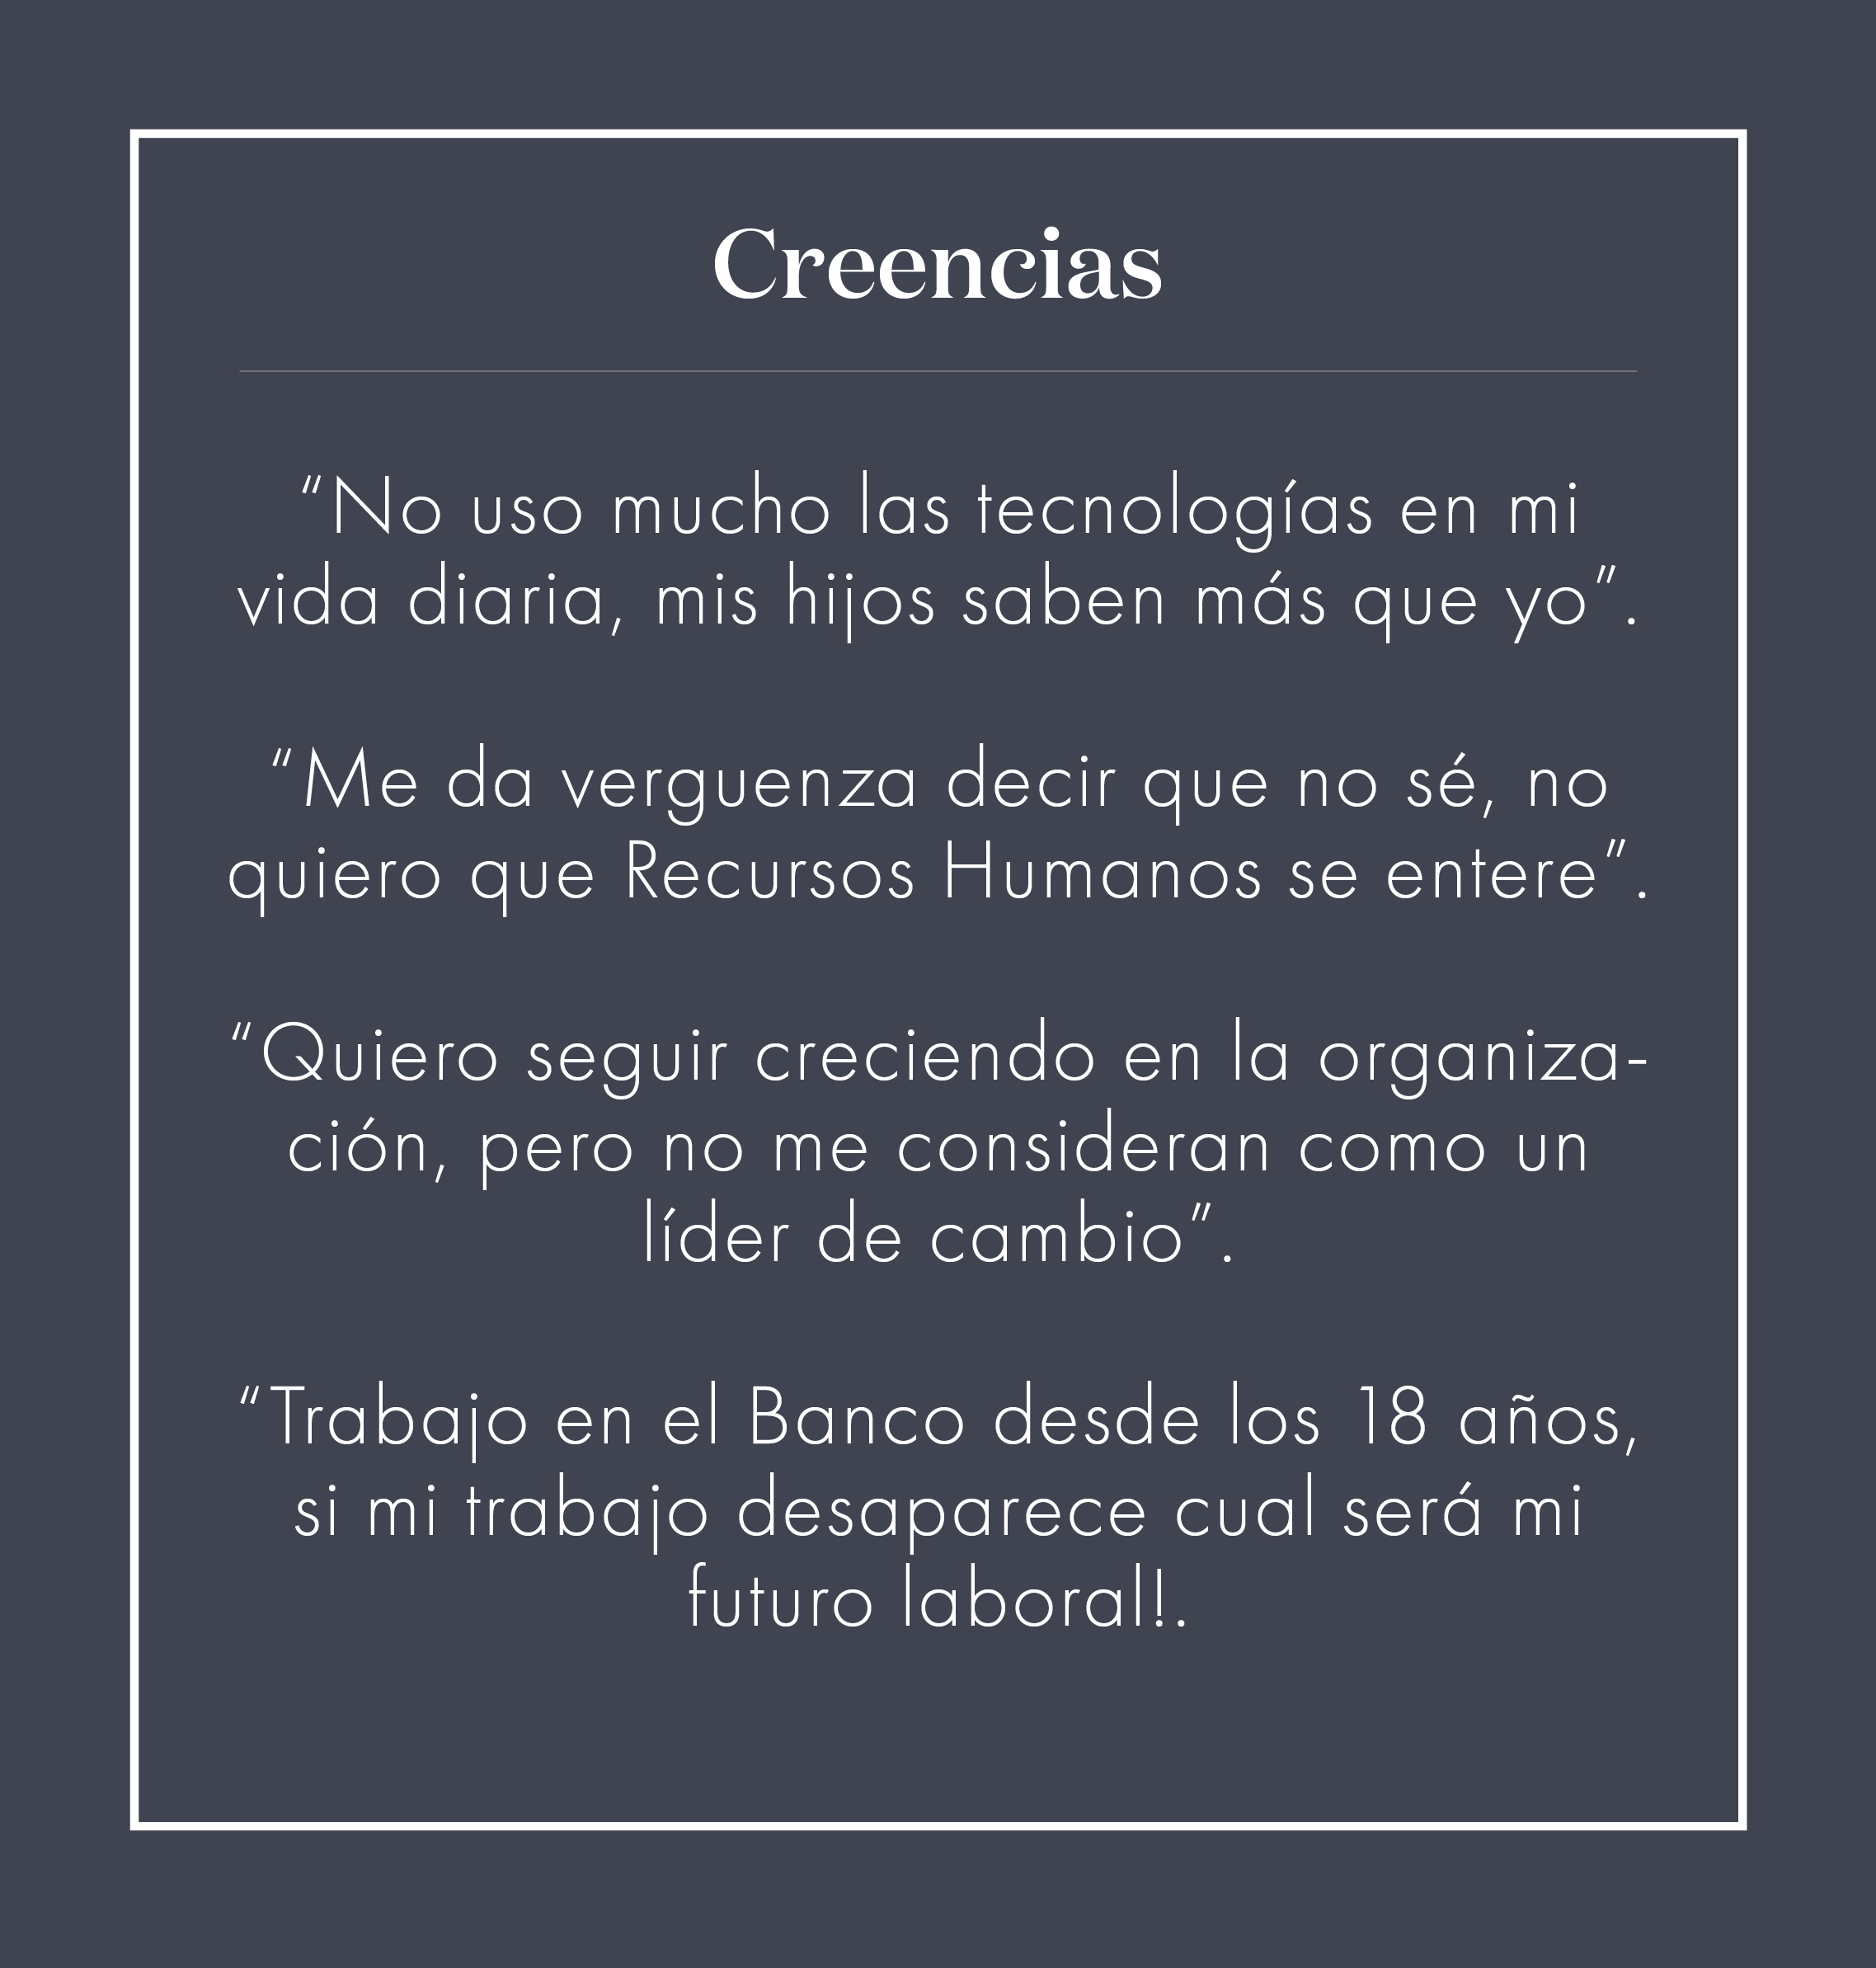 MOBILE-CUADROS-05.png